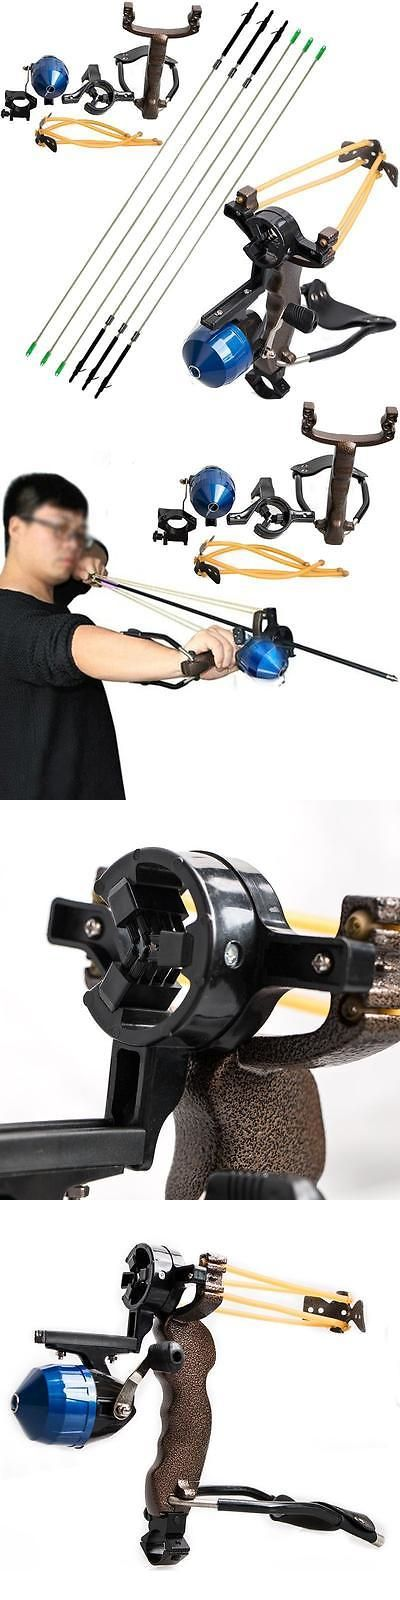 Slingshots 117141: Fishing Reel Slingshot Archery Sling Bow Hunting Catapult Shooting Carbon Arrows -> BUY IT NOW ONLY: $86 on eBay!